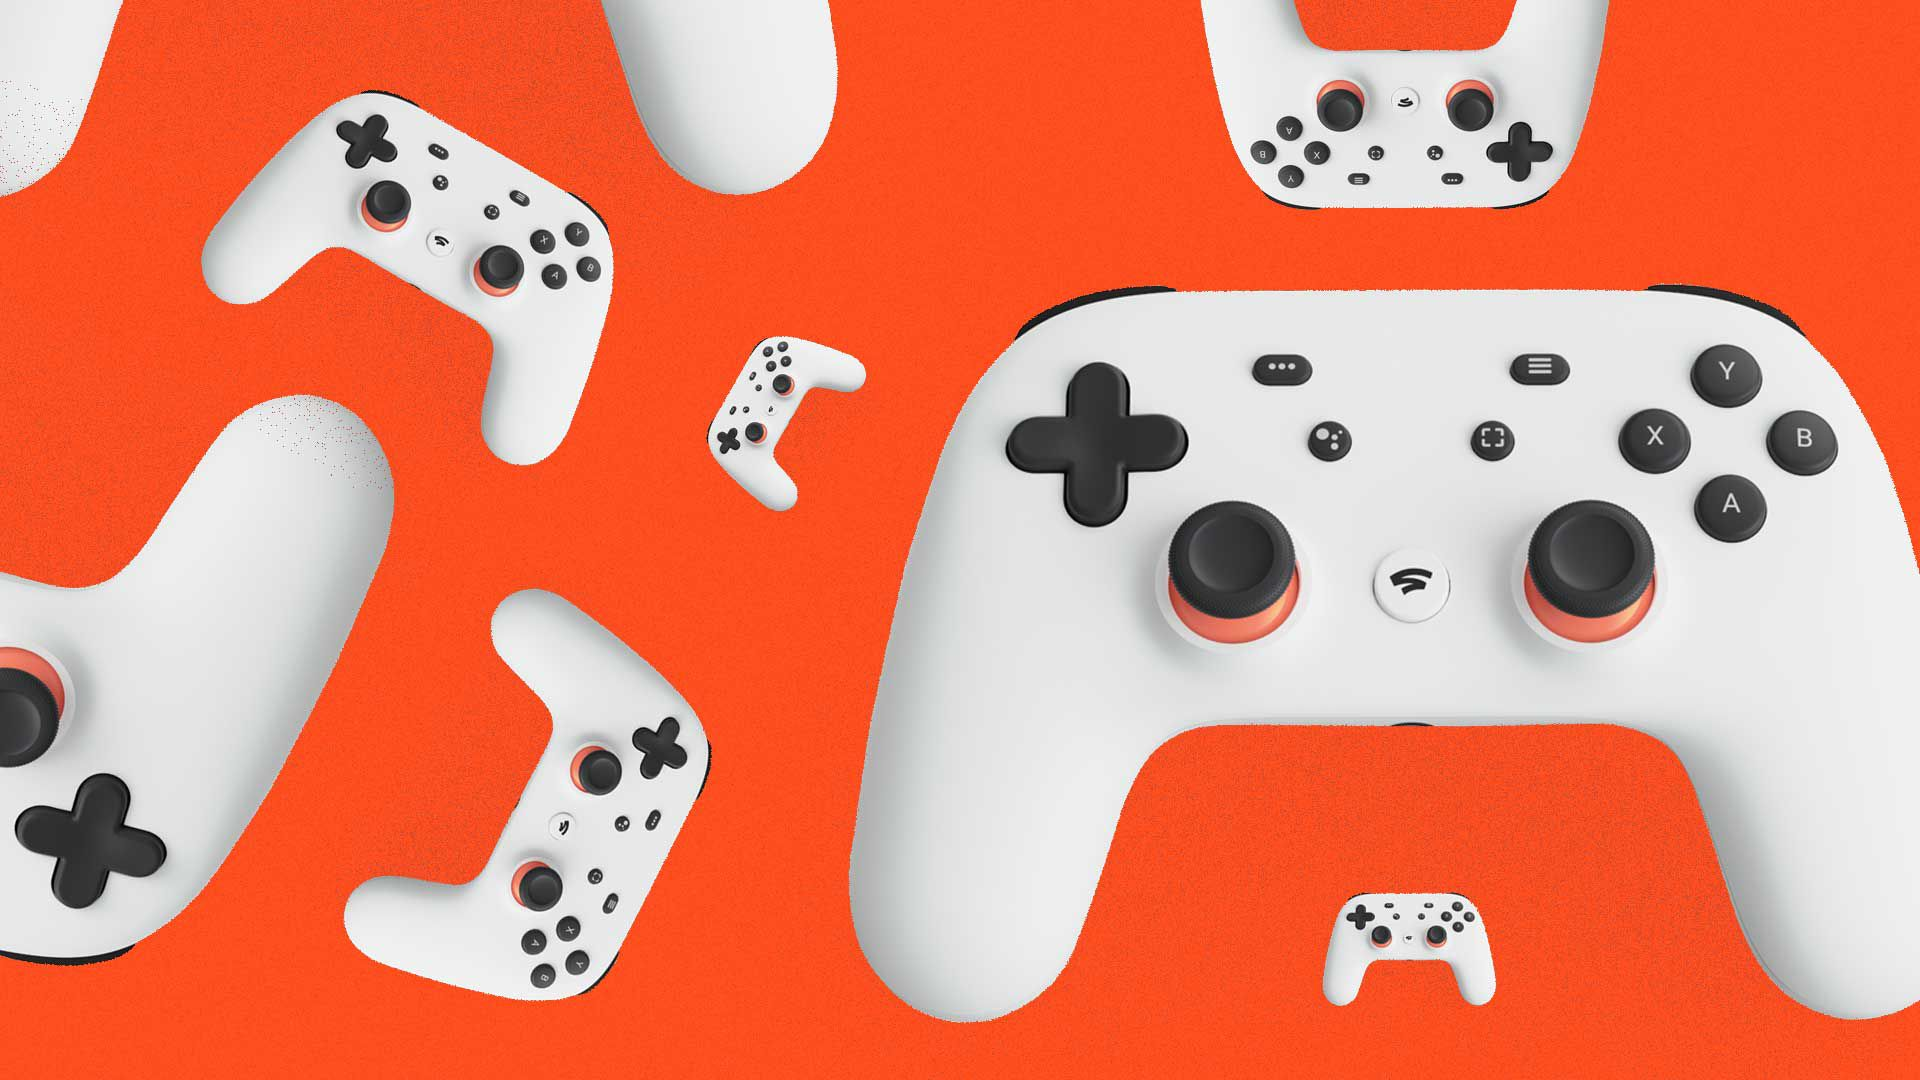 Multiple images of Google's game controller against an orange background